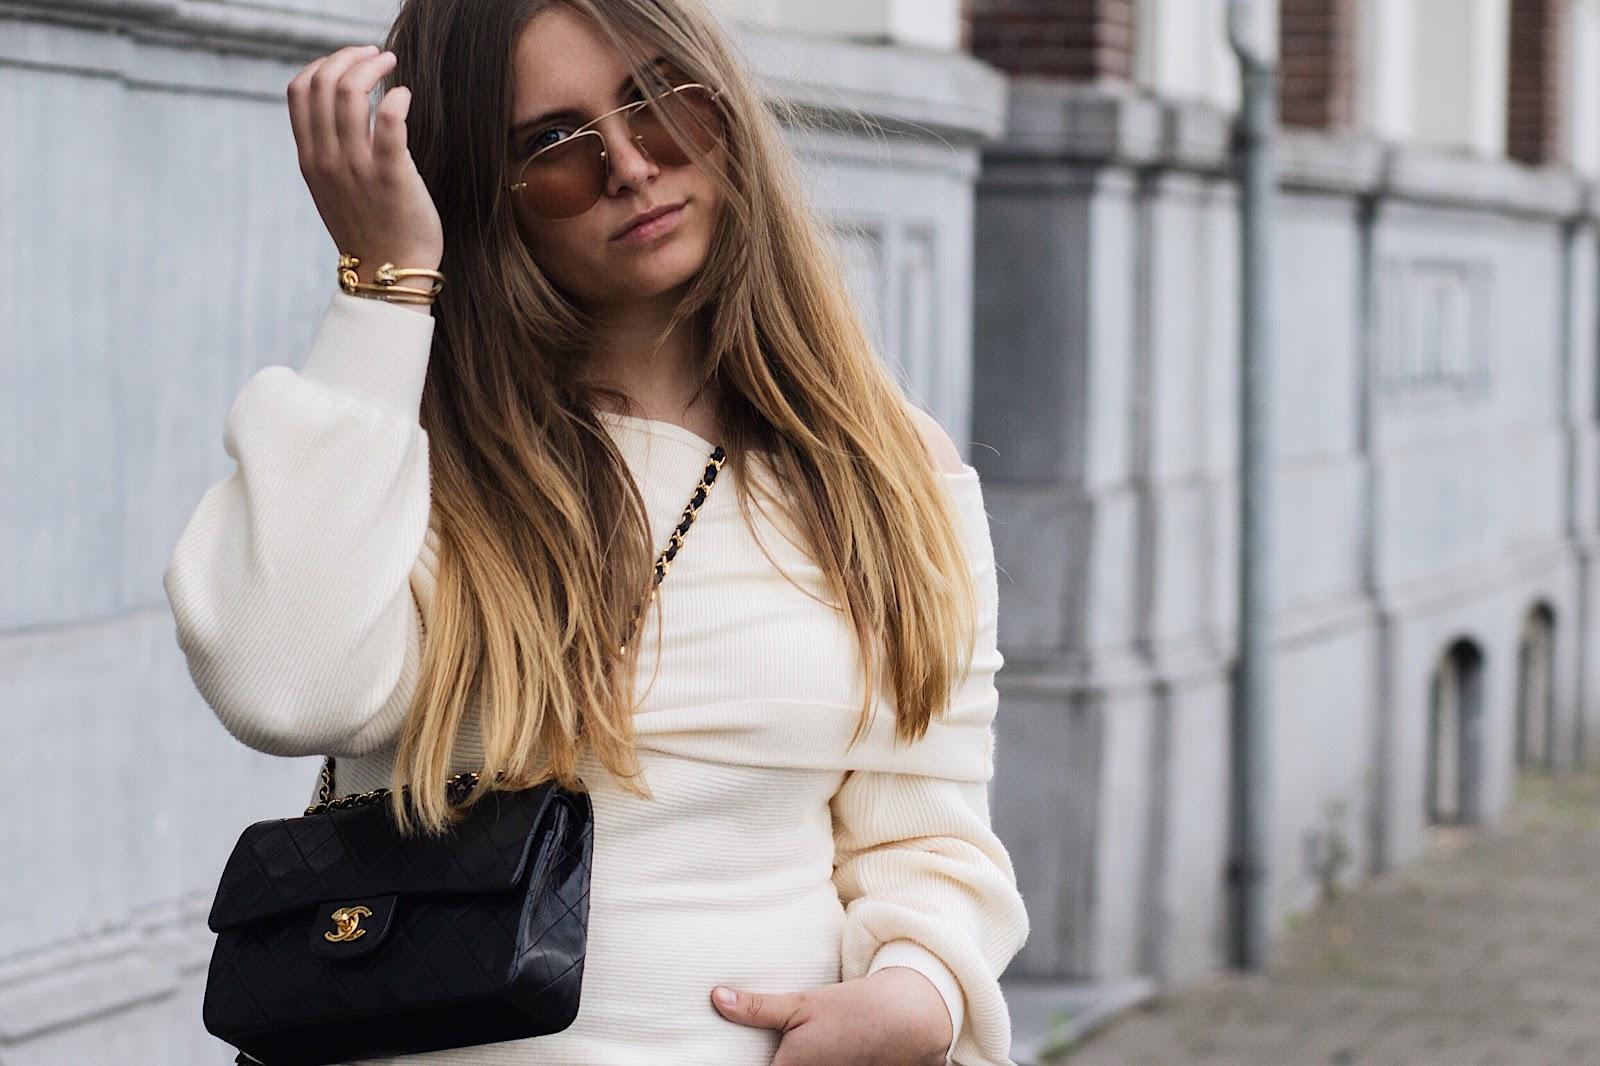 fashion blogger dominique candido wearing a zara top j brand jeans prada sunglasses chanel bag and celine sneakers